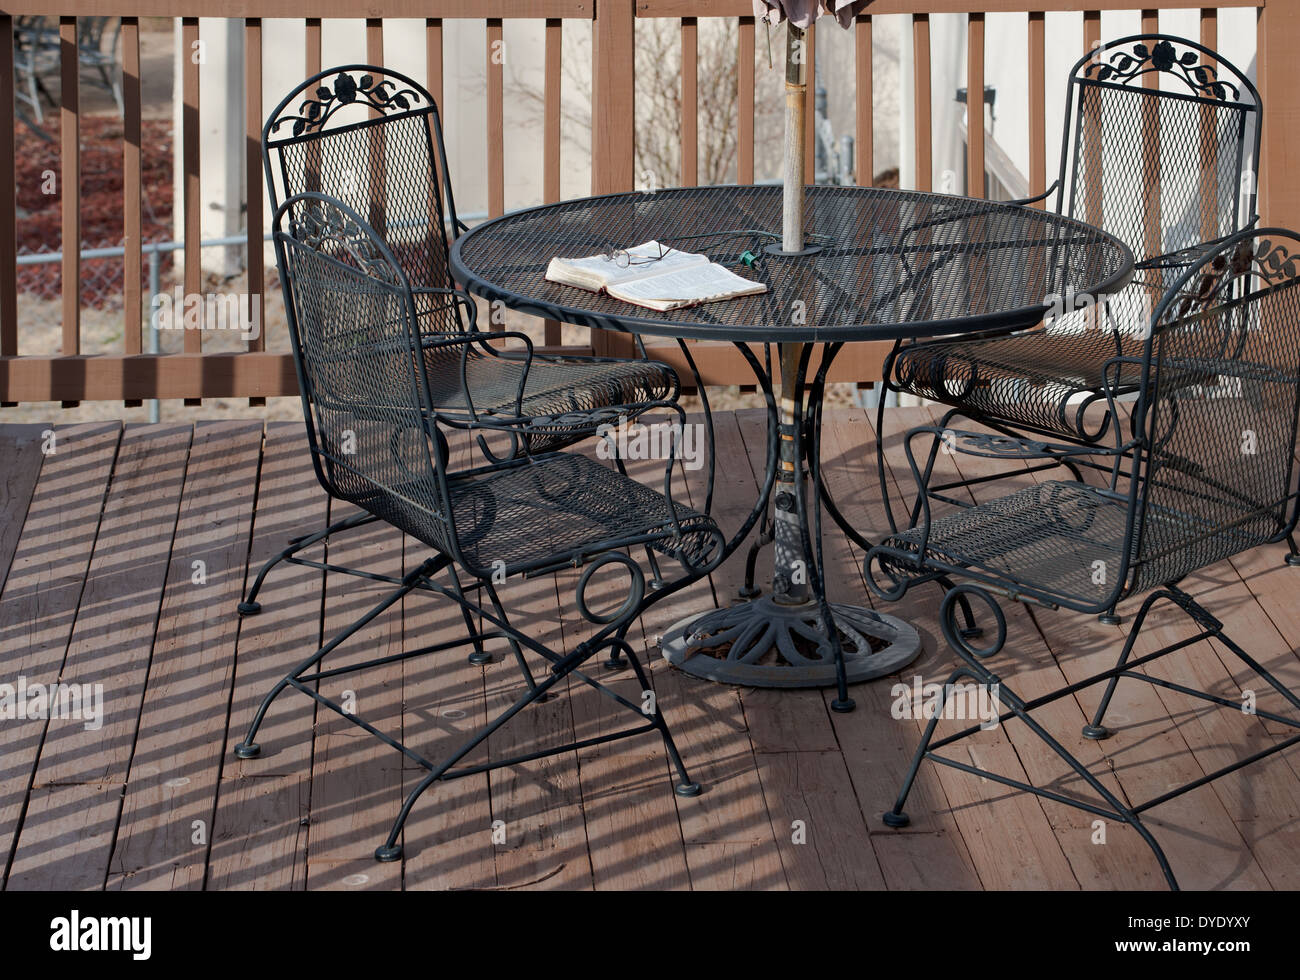 miniature furniture cardboardwood routers. Deck Wrought Iron Table. Bible Lies Open On A Table Wooden - Miniature Furniture Cardboardwood Routers L